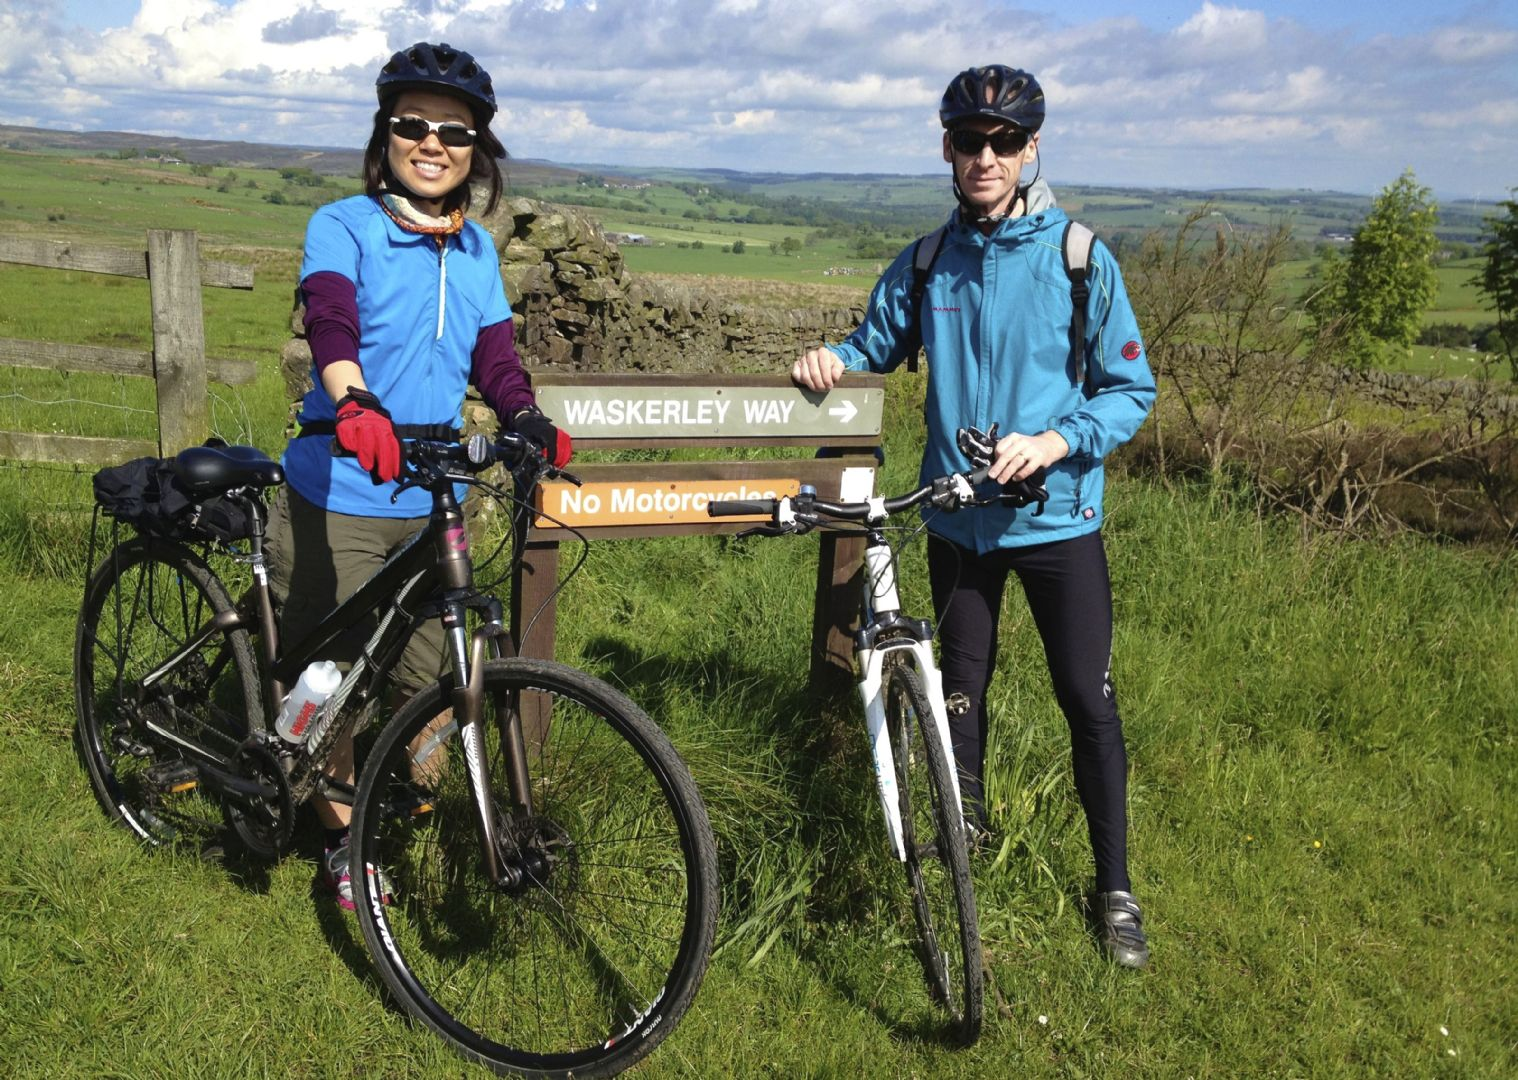 _Customer.103238.16258.jpg - UK - C2C - Coast to Coast 4 Days Cycling - Self-Guided Leisure Cycling Holiday - Leisure Cycling